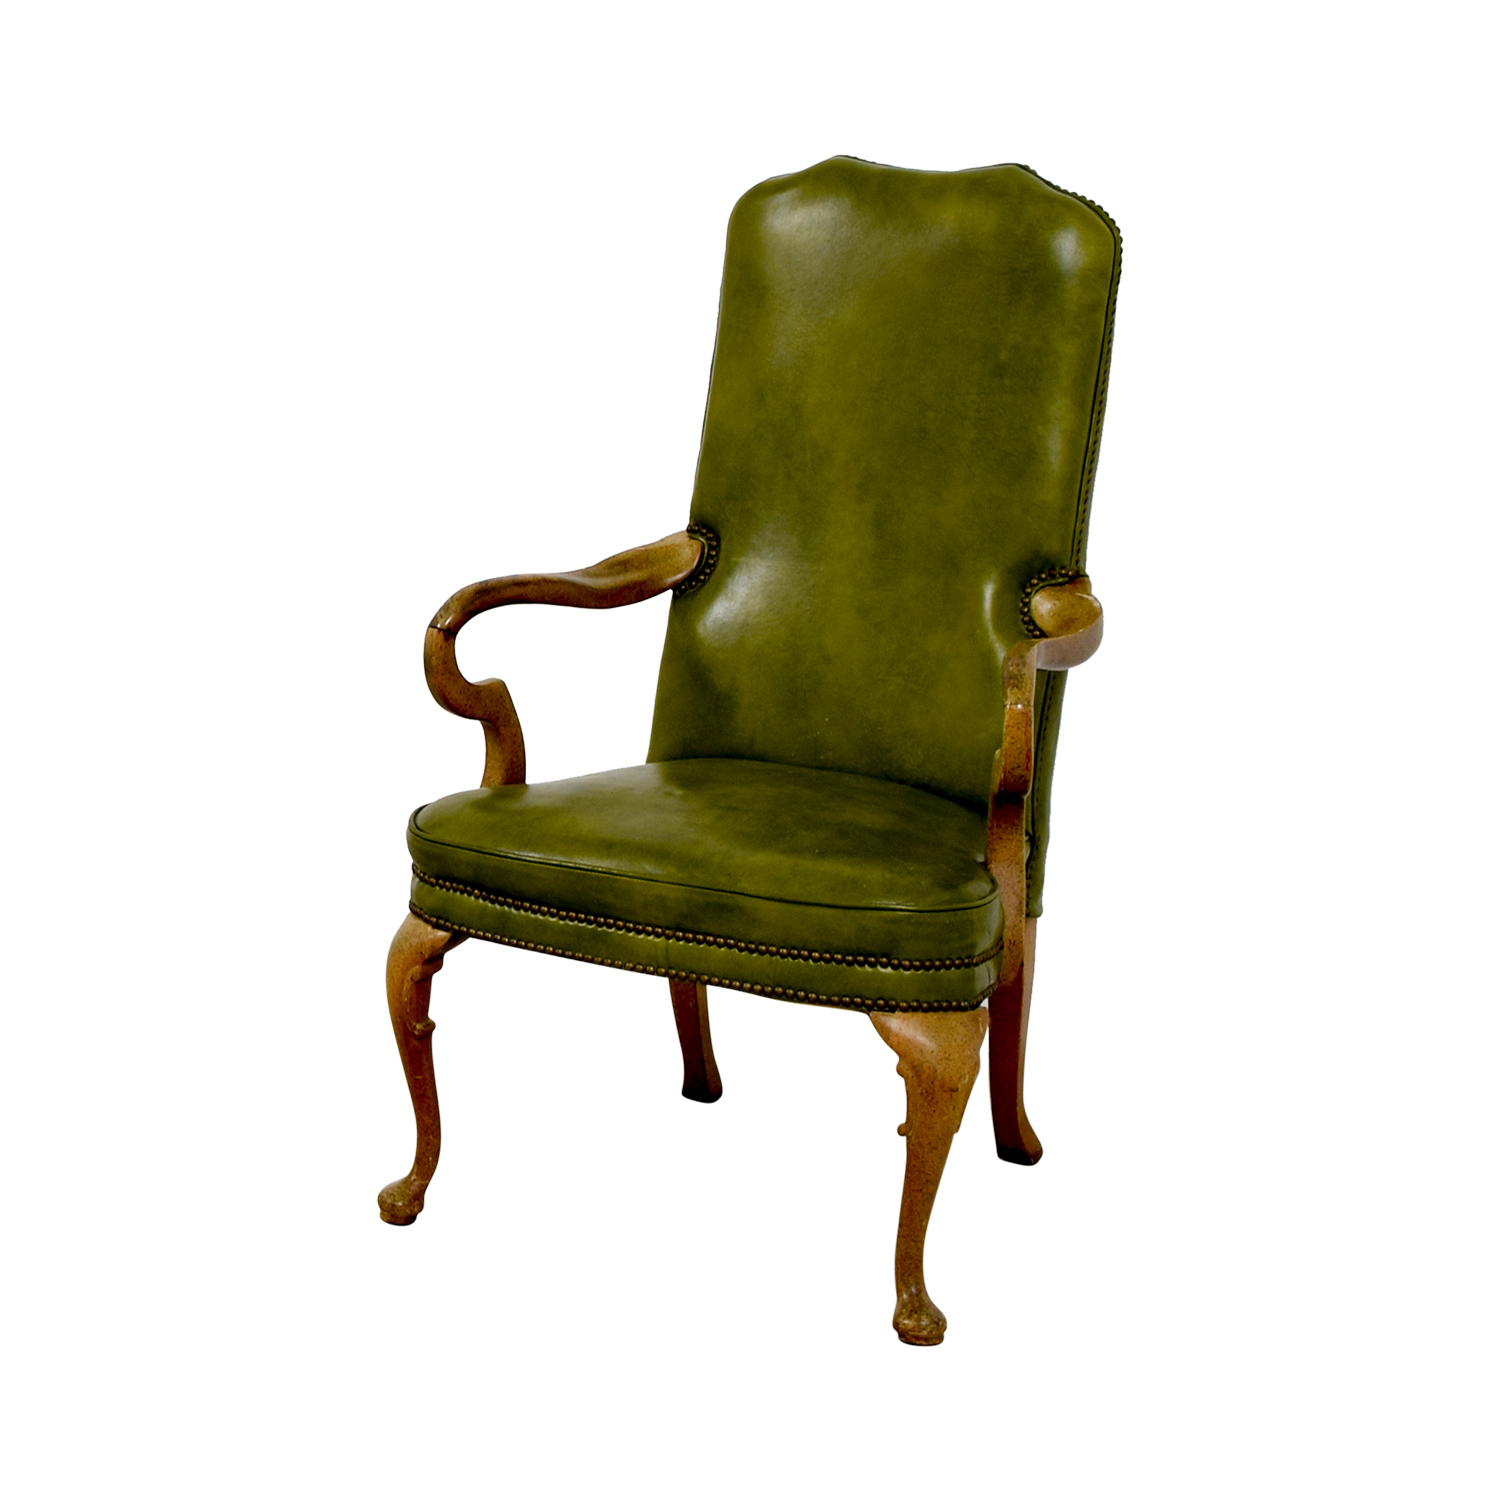 90 Off Green Leather Studded Regency Chair Chairs